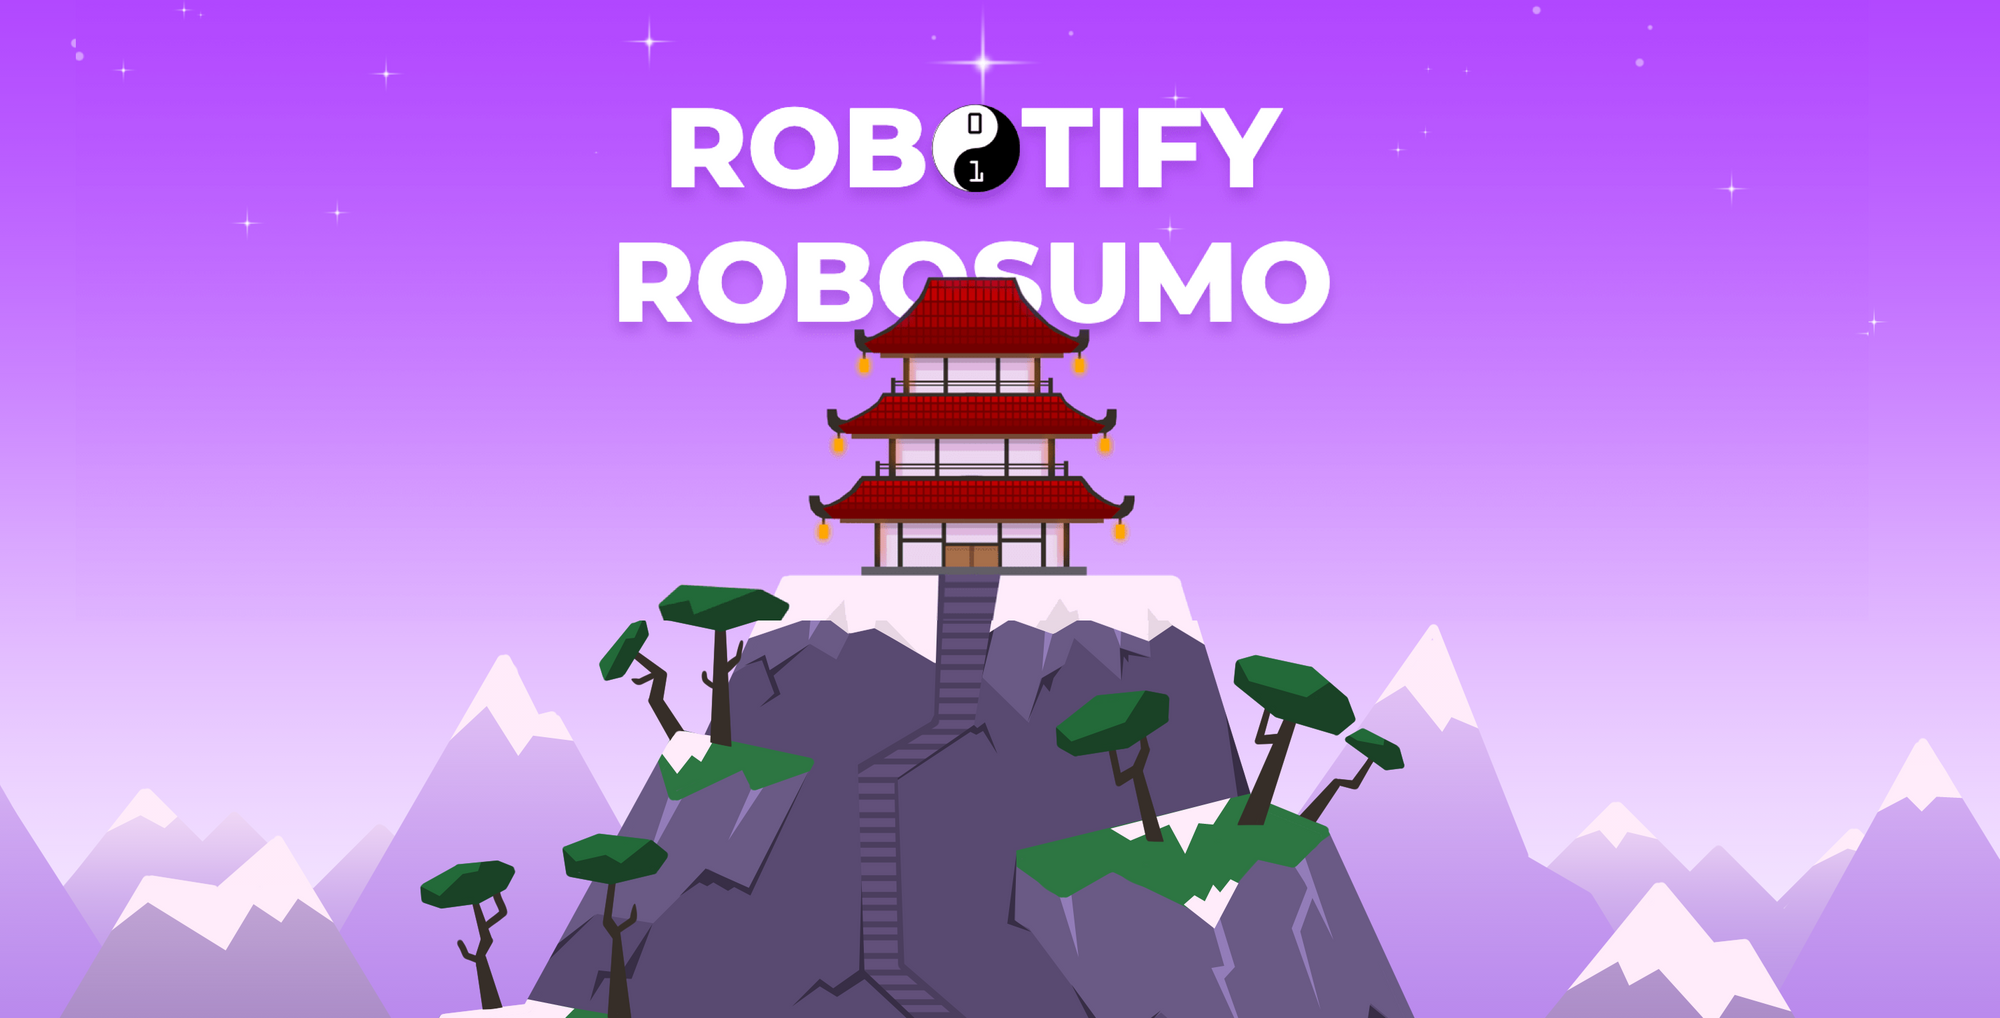 Robotify team up with CoderDojo to create the world's first virtual robosumo wrestling challenge.